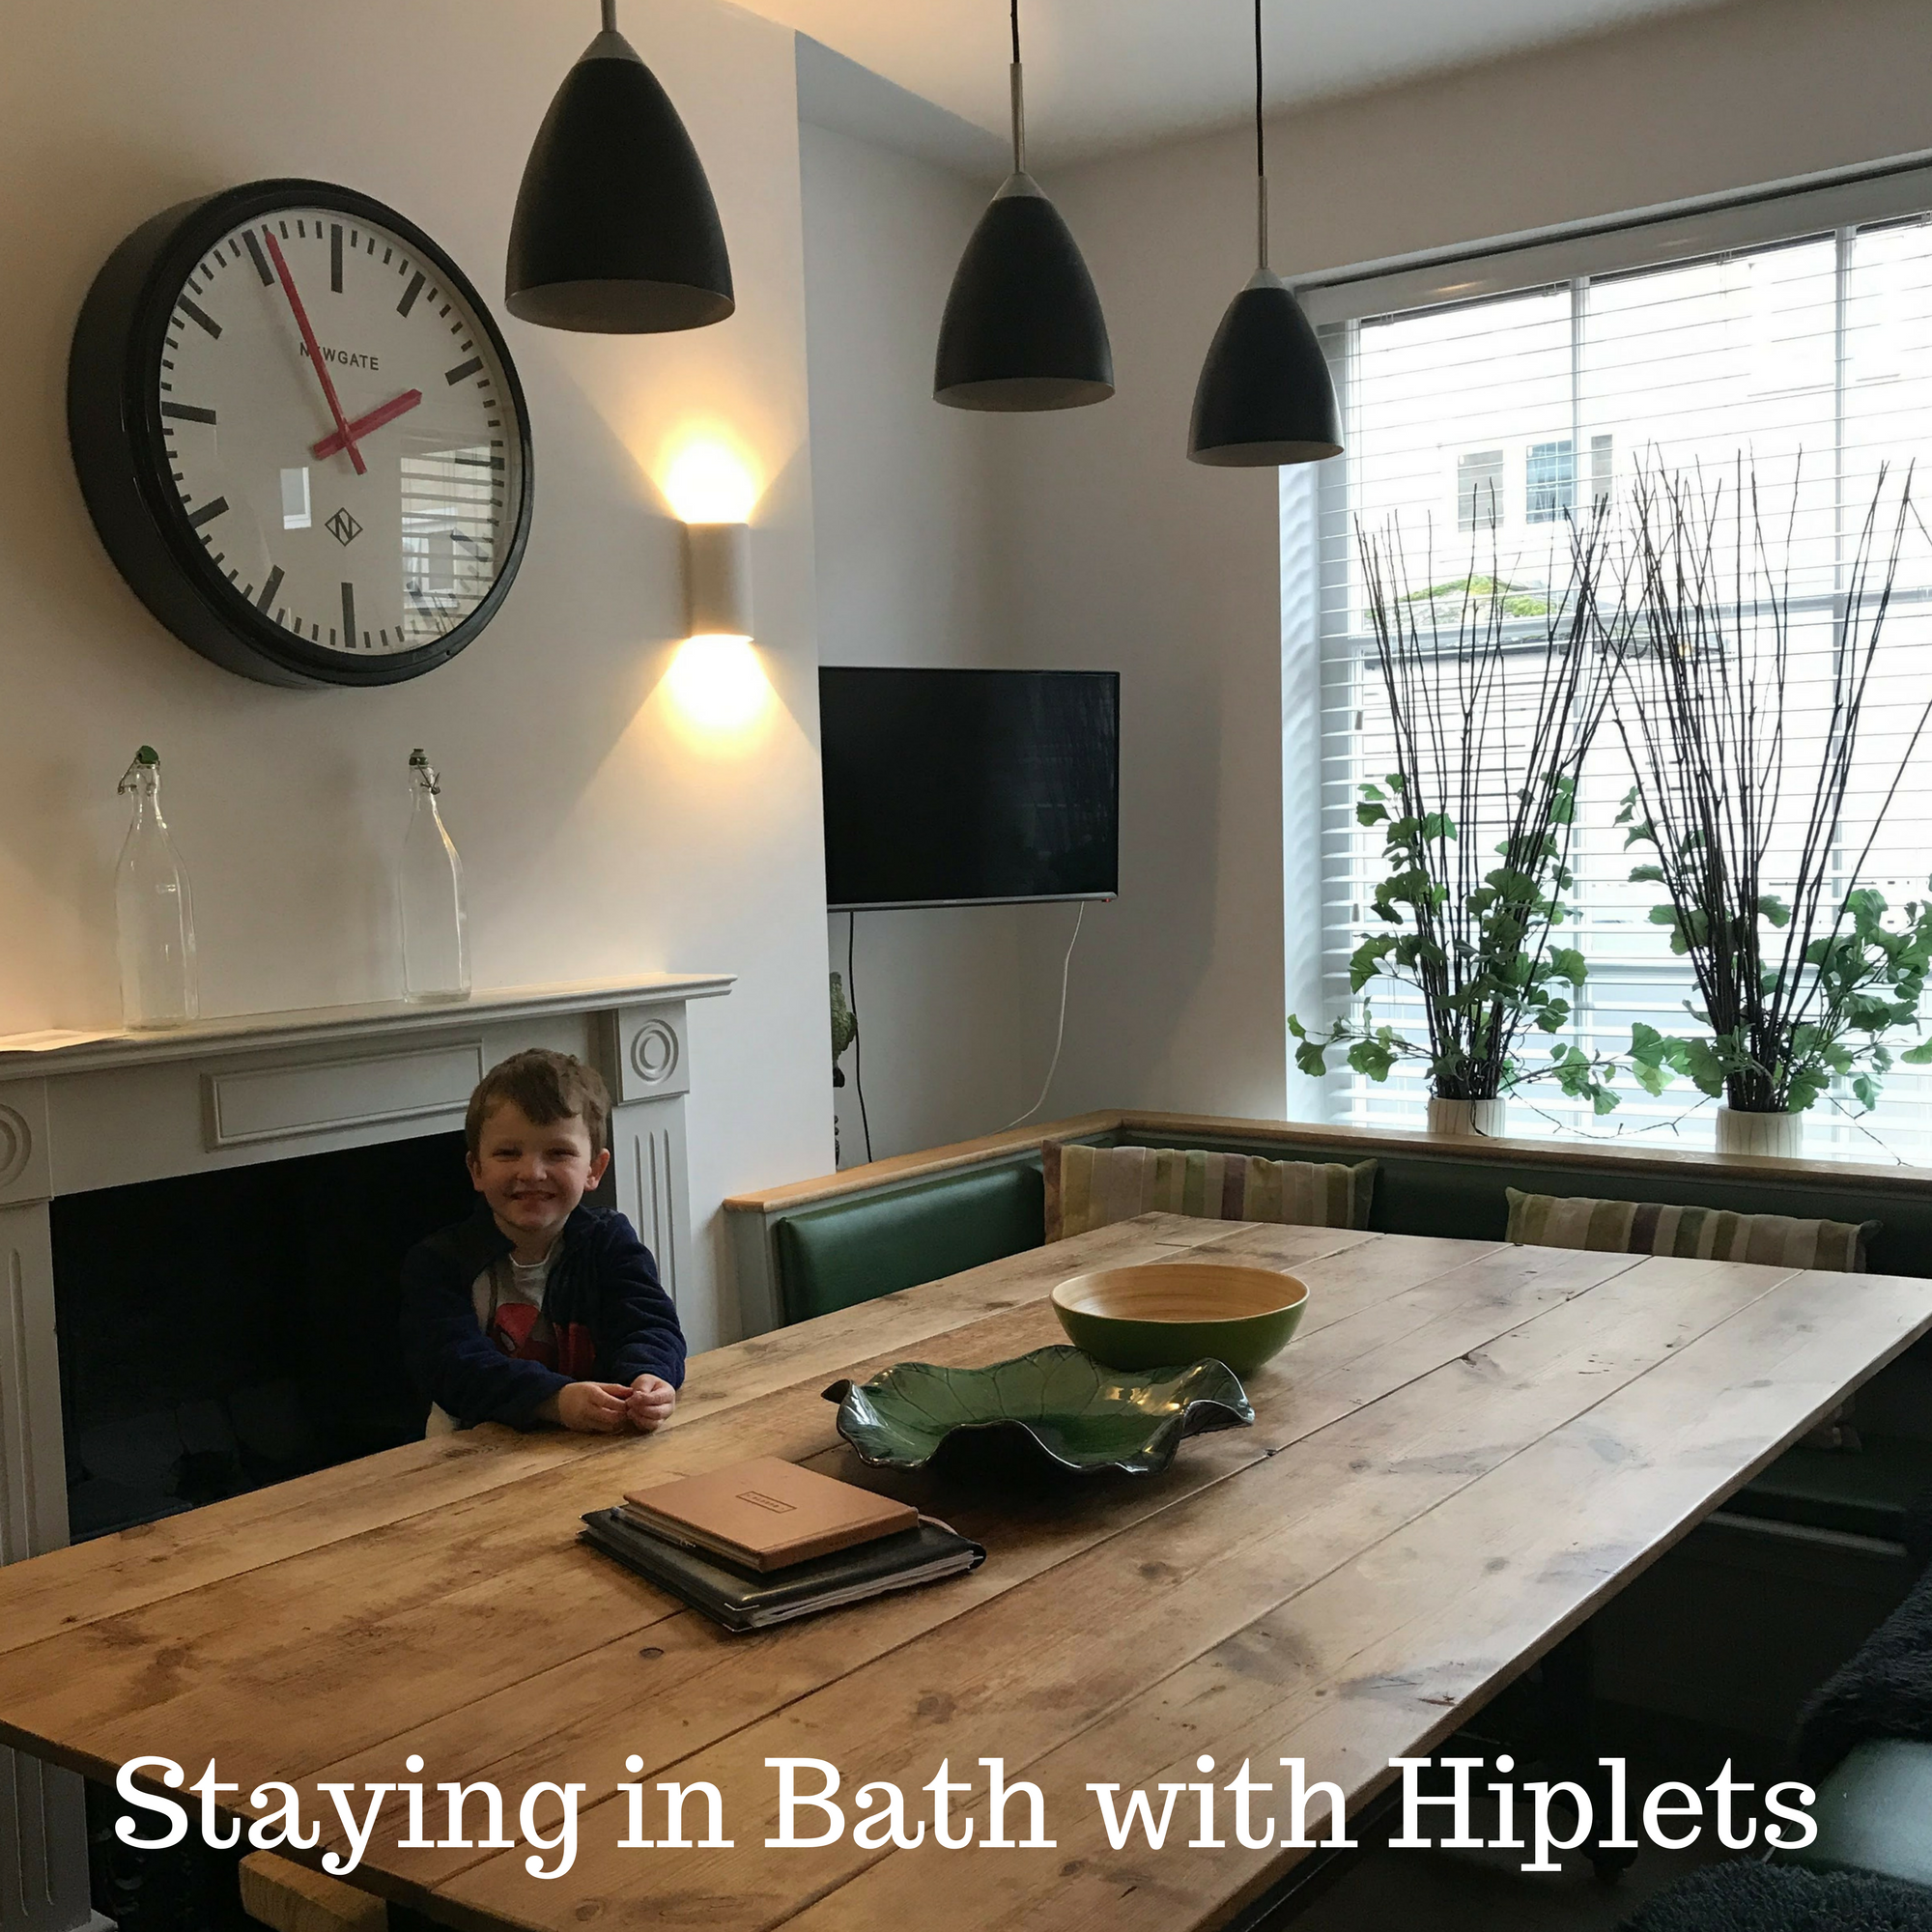 Staying in Bath with Hiplets